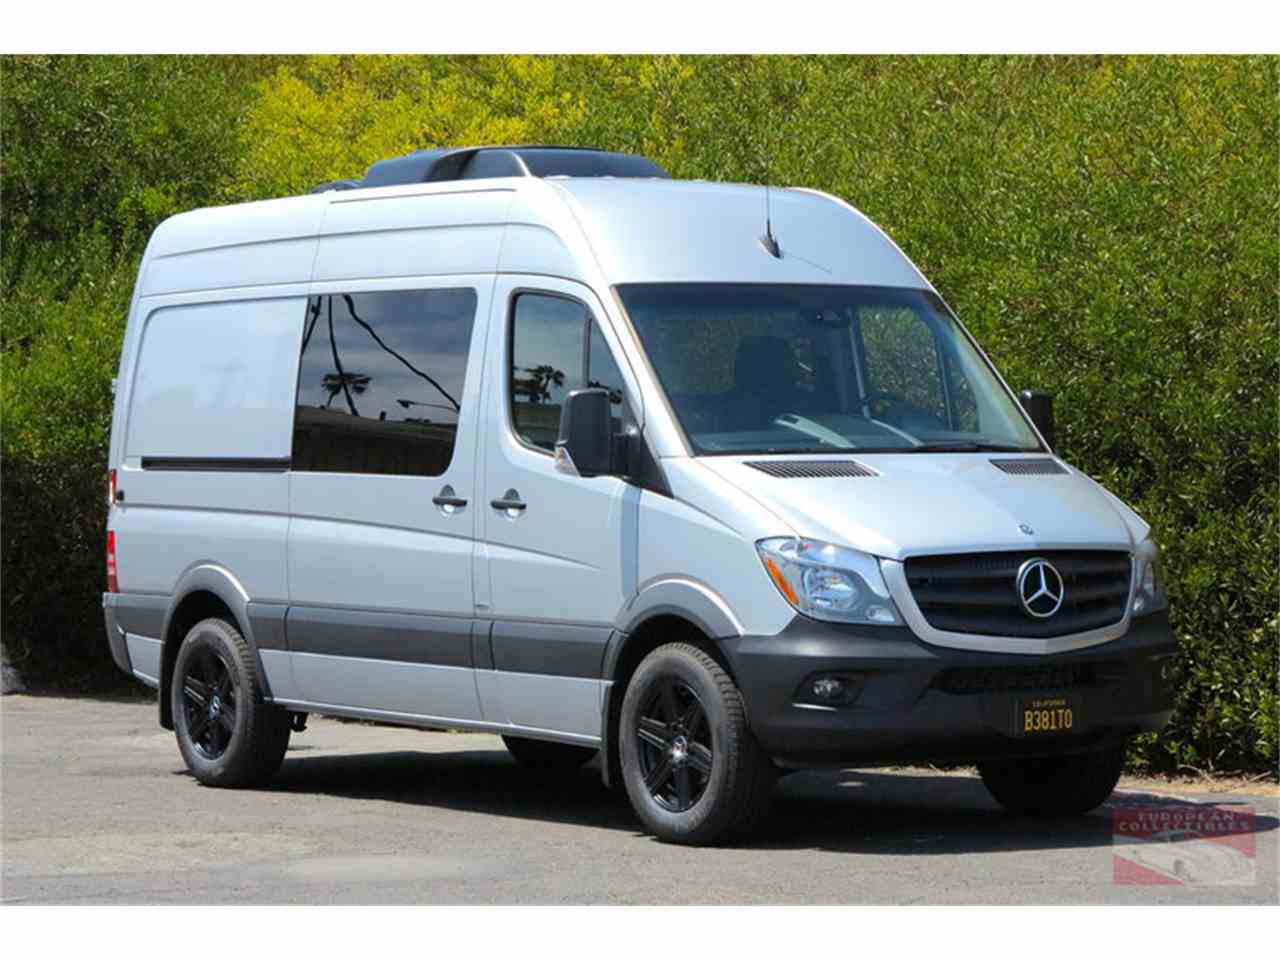 mercedes benz laguna niguel with 2016 Mercedes Benz Sprinter 2500 Custom C Er For Sale In Costa Mesa California 92627 on Staff additionally 94545 C230ss Rims C240 in addition 2018 Mercedes Benz GLE350 SUV 299740 also 1985 Mercedes Benz 300 Series Turbo Diesel For Sale further New 2017 Smart Smart Fortwo Coupe Pure Rear Wheel Drive Coupe Wmefj5daxhk172464.